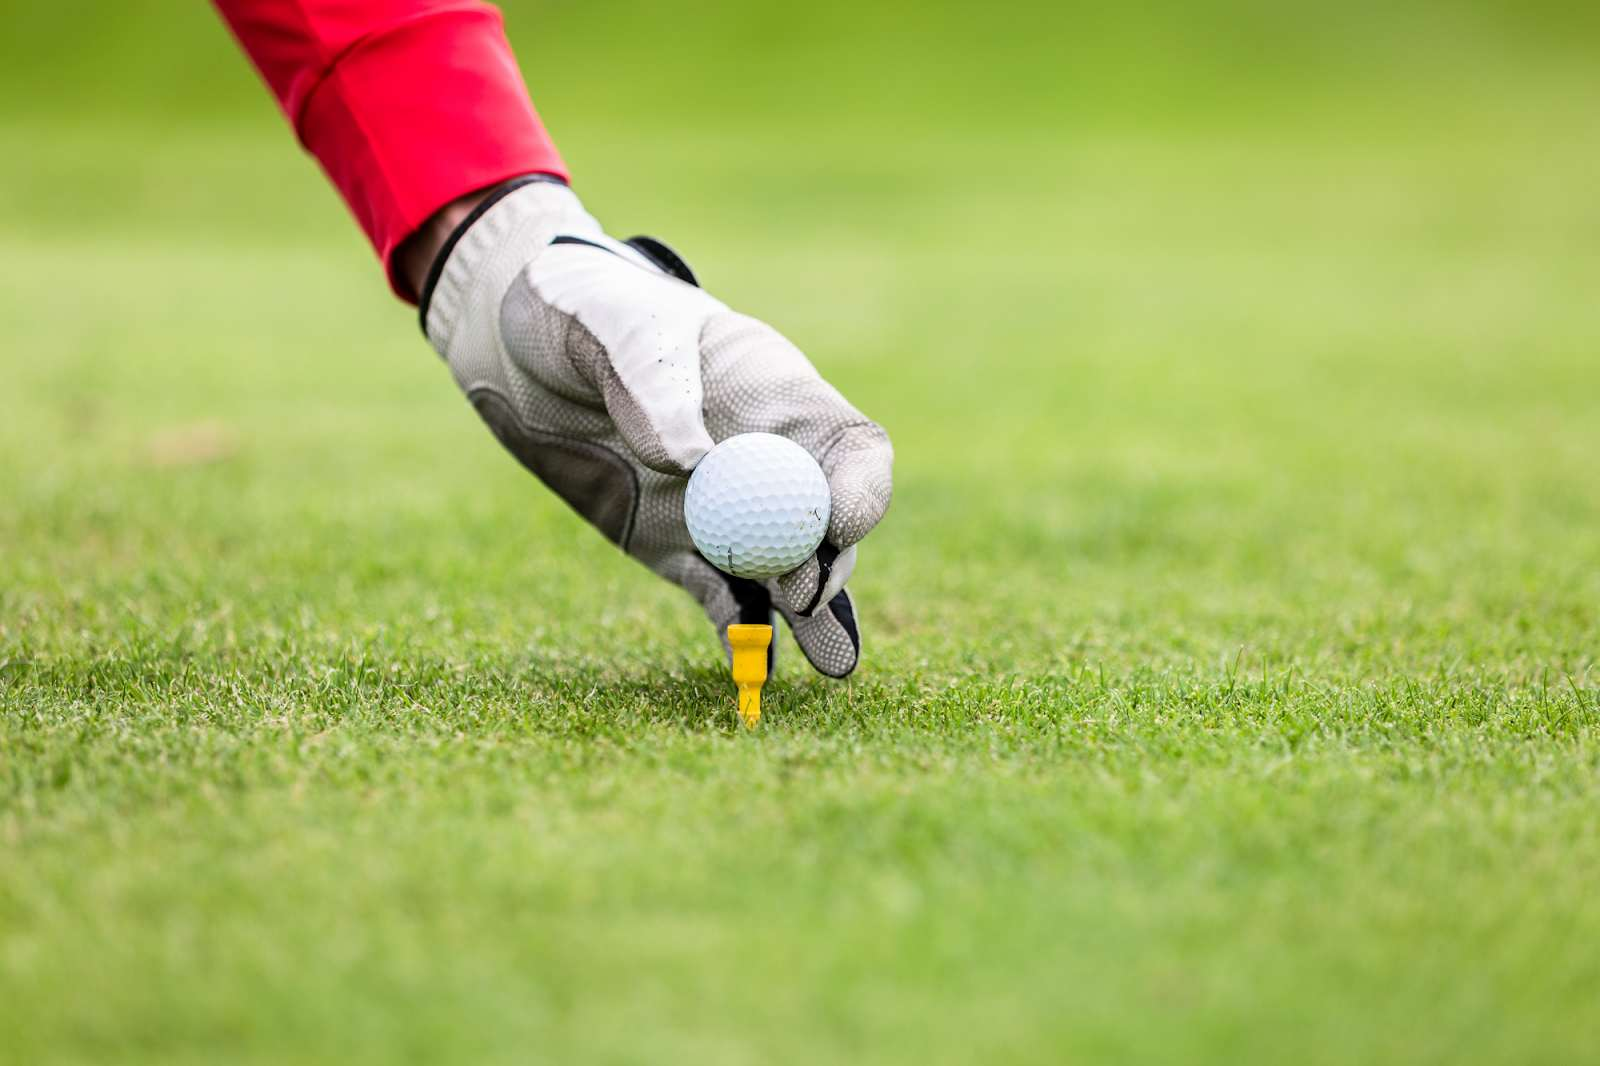 Gloved left hand placing a golf ball on a tee.